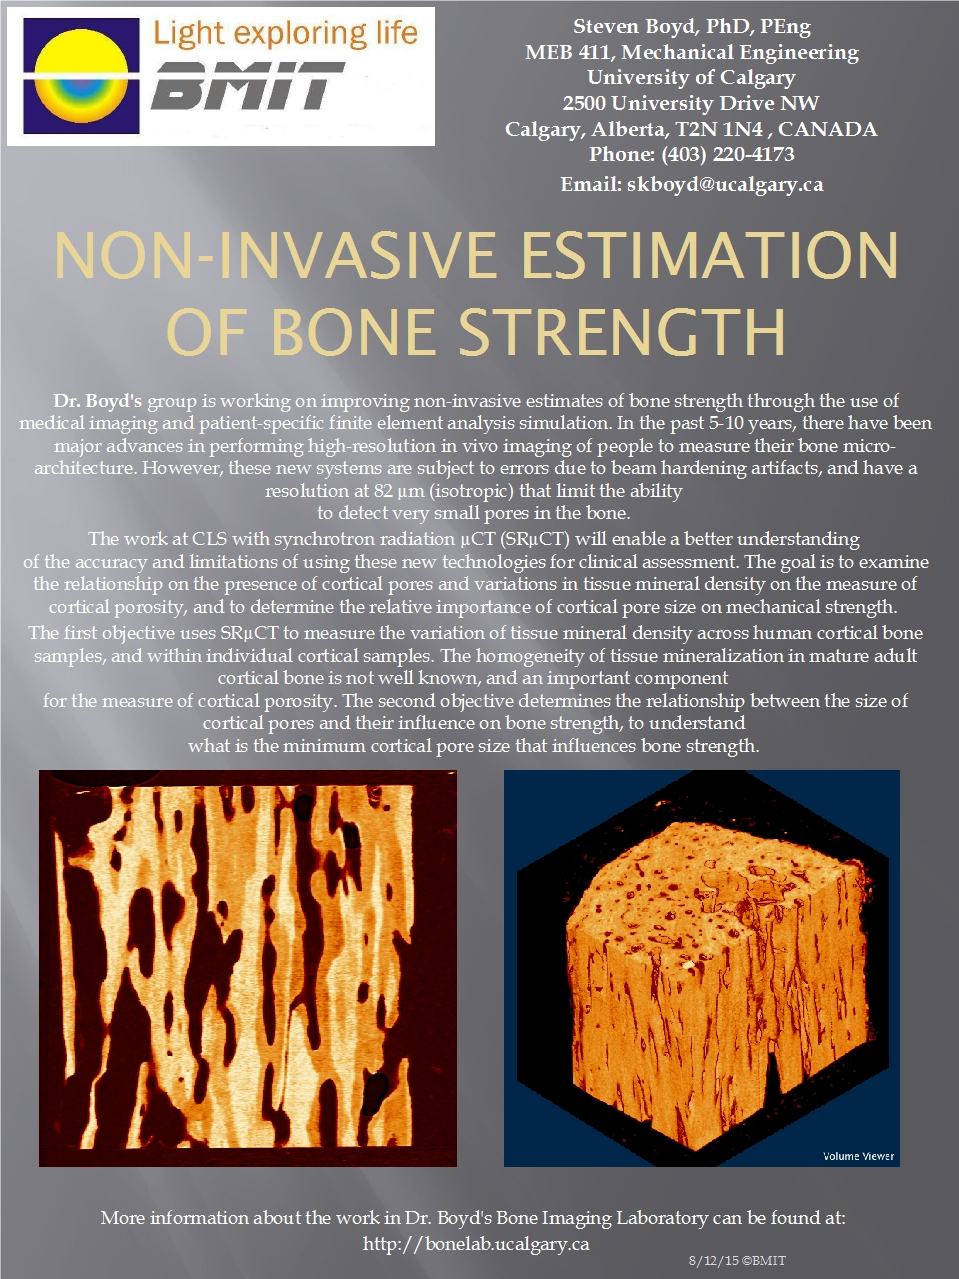 Non-Invasive Estimation of Bone Strength Image